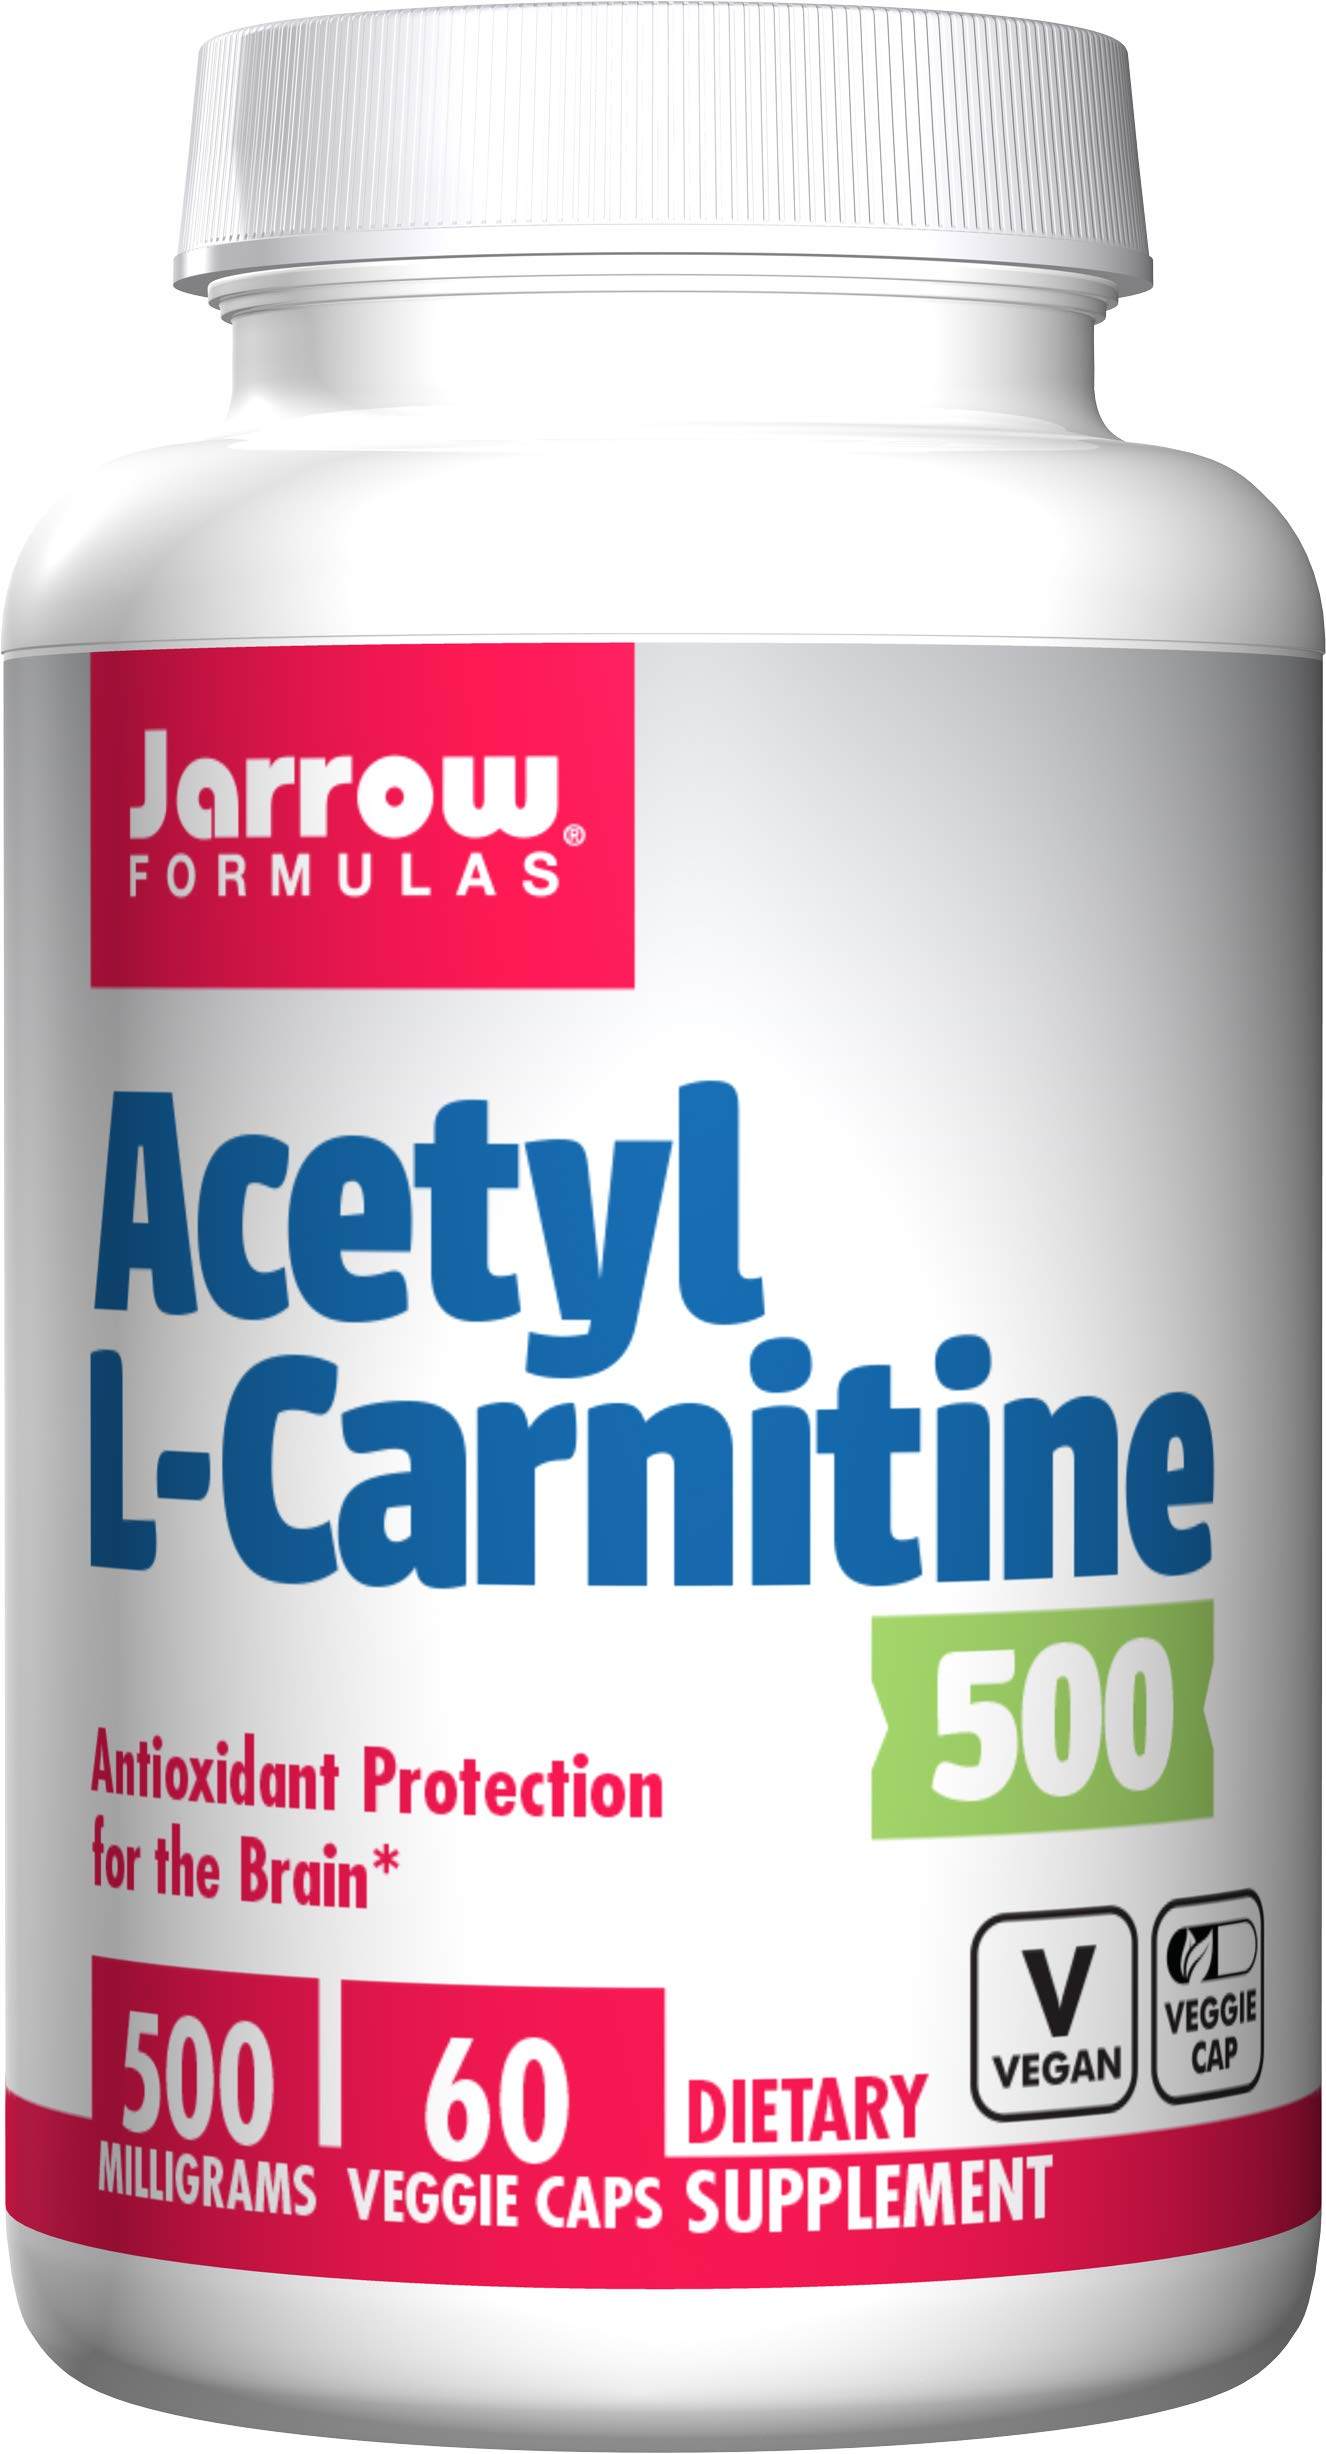 Jarrow Formulas Acetyl L-Carnitine, Antioxidant Protection for The Brain, 500 mg, 60 Capsules by Jarrow Formulas